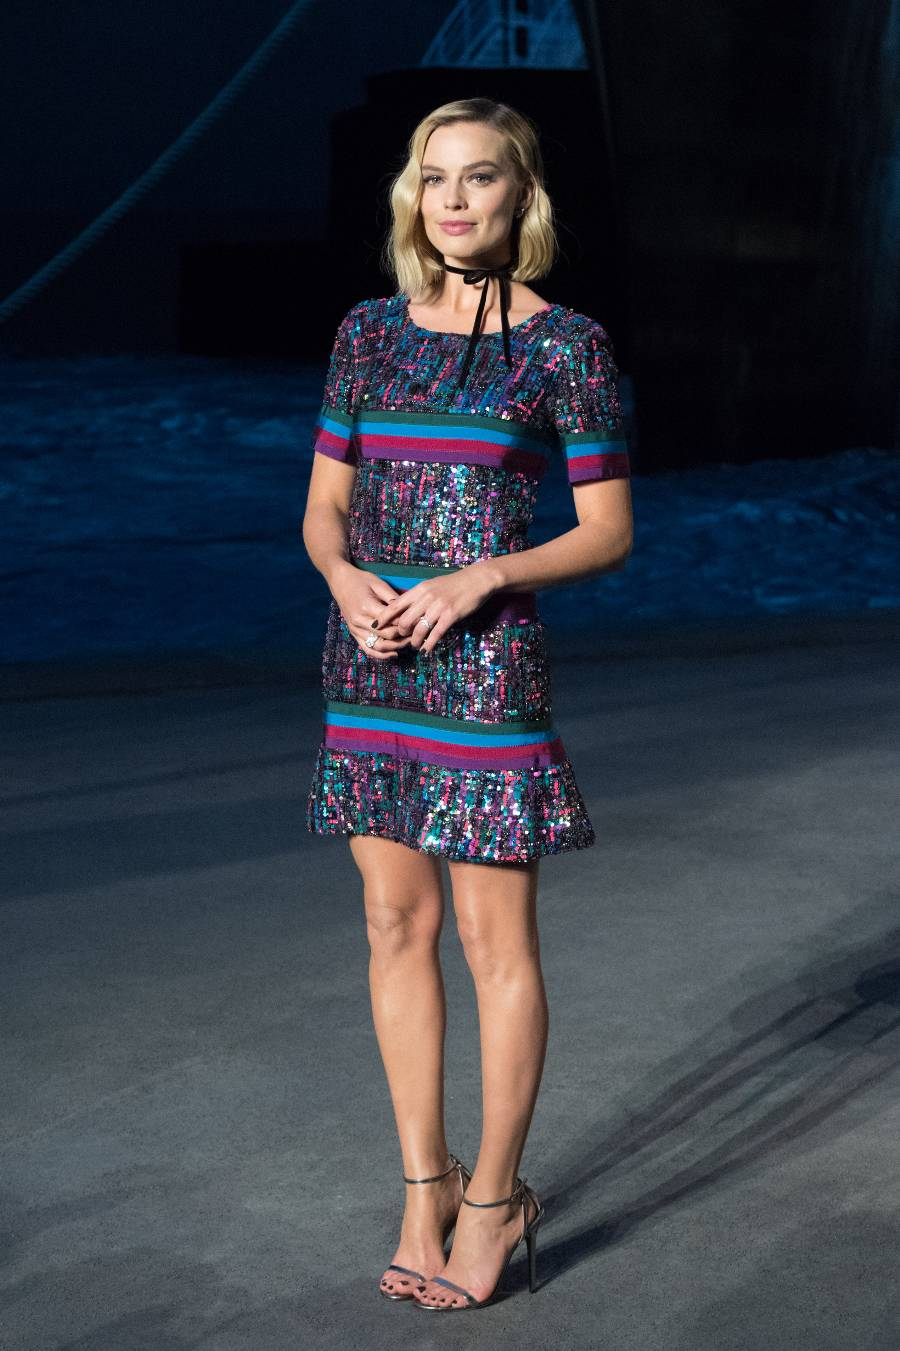 Margot Robbie at Chanel Cruise 2019